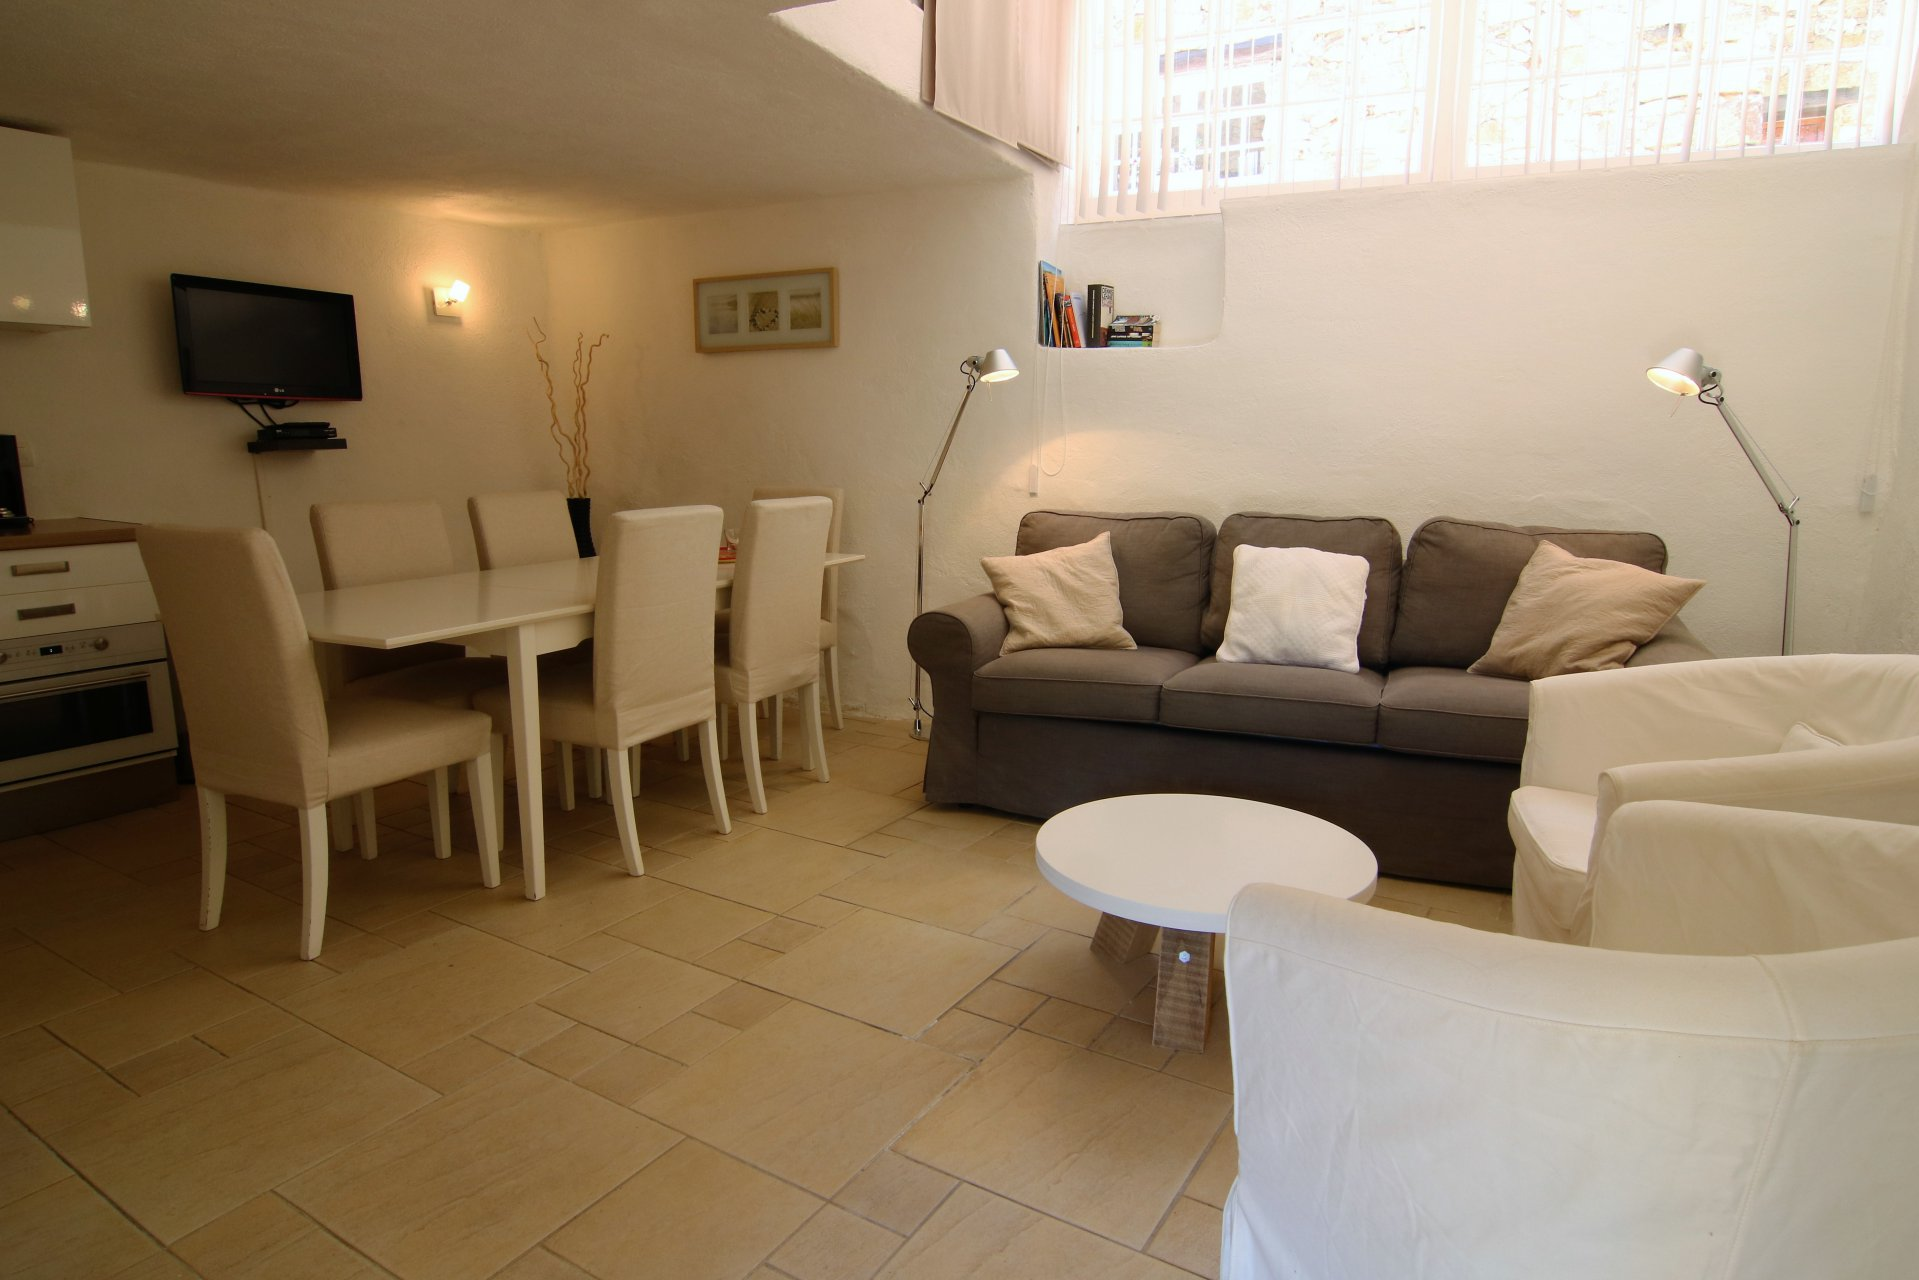 Plan de la Tour - UNIQUE! In beautiful Hameau 3 bedroom house with 'Cabanon'